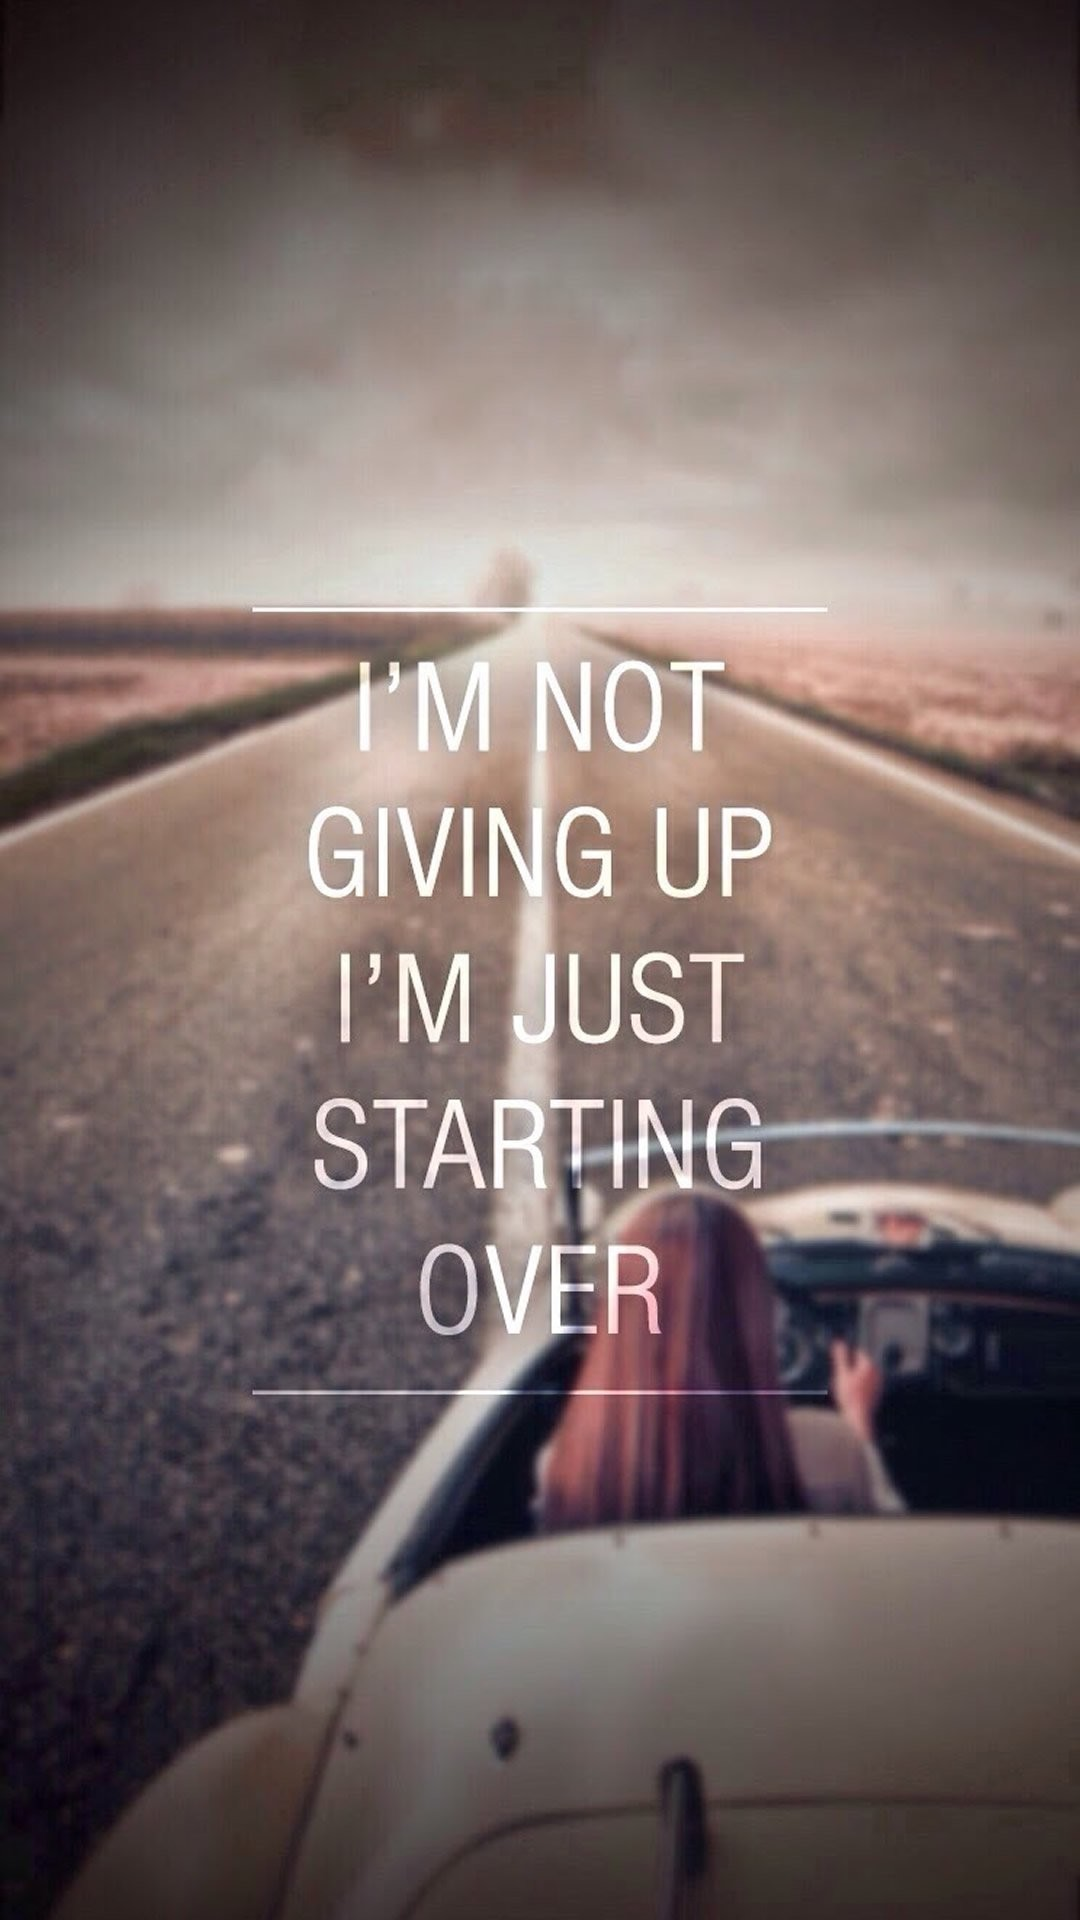 1080x1920 I'm not giving up. I'm just starting over